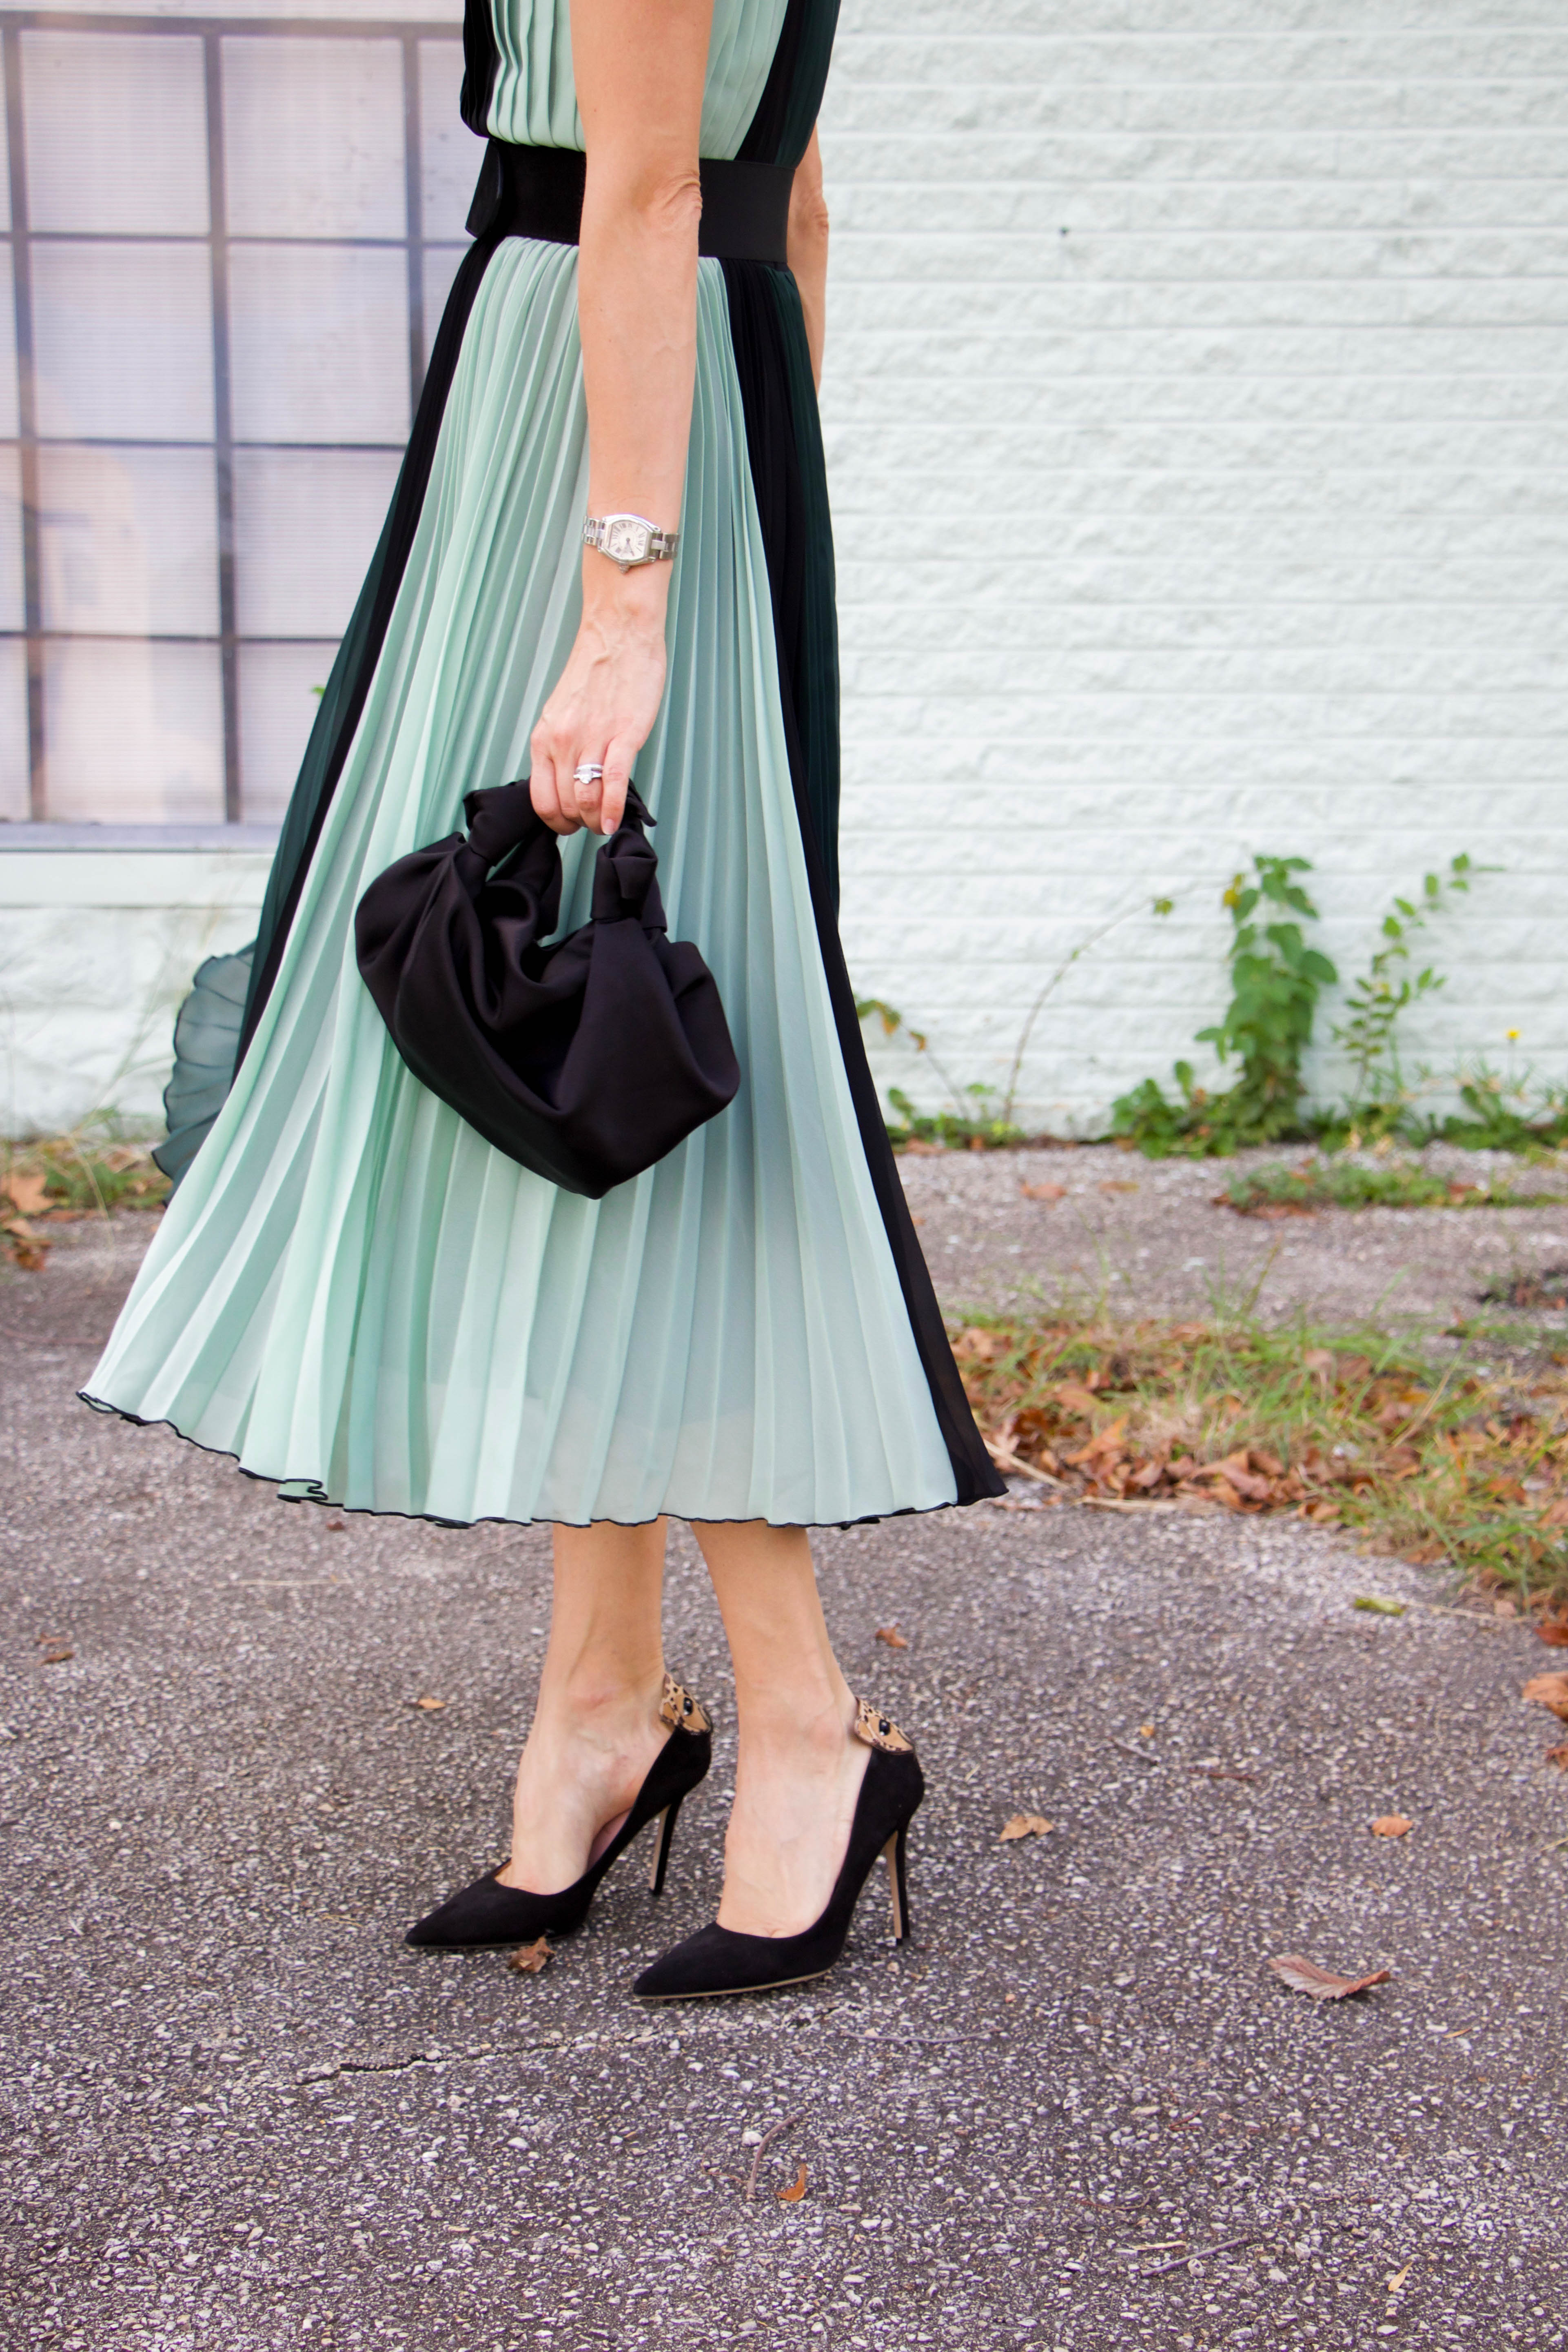 Atlantic Pacific green block dress - black pumps - silk bag - sunnies - holiday style - party dress - winter look